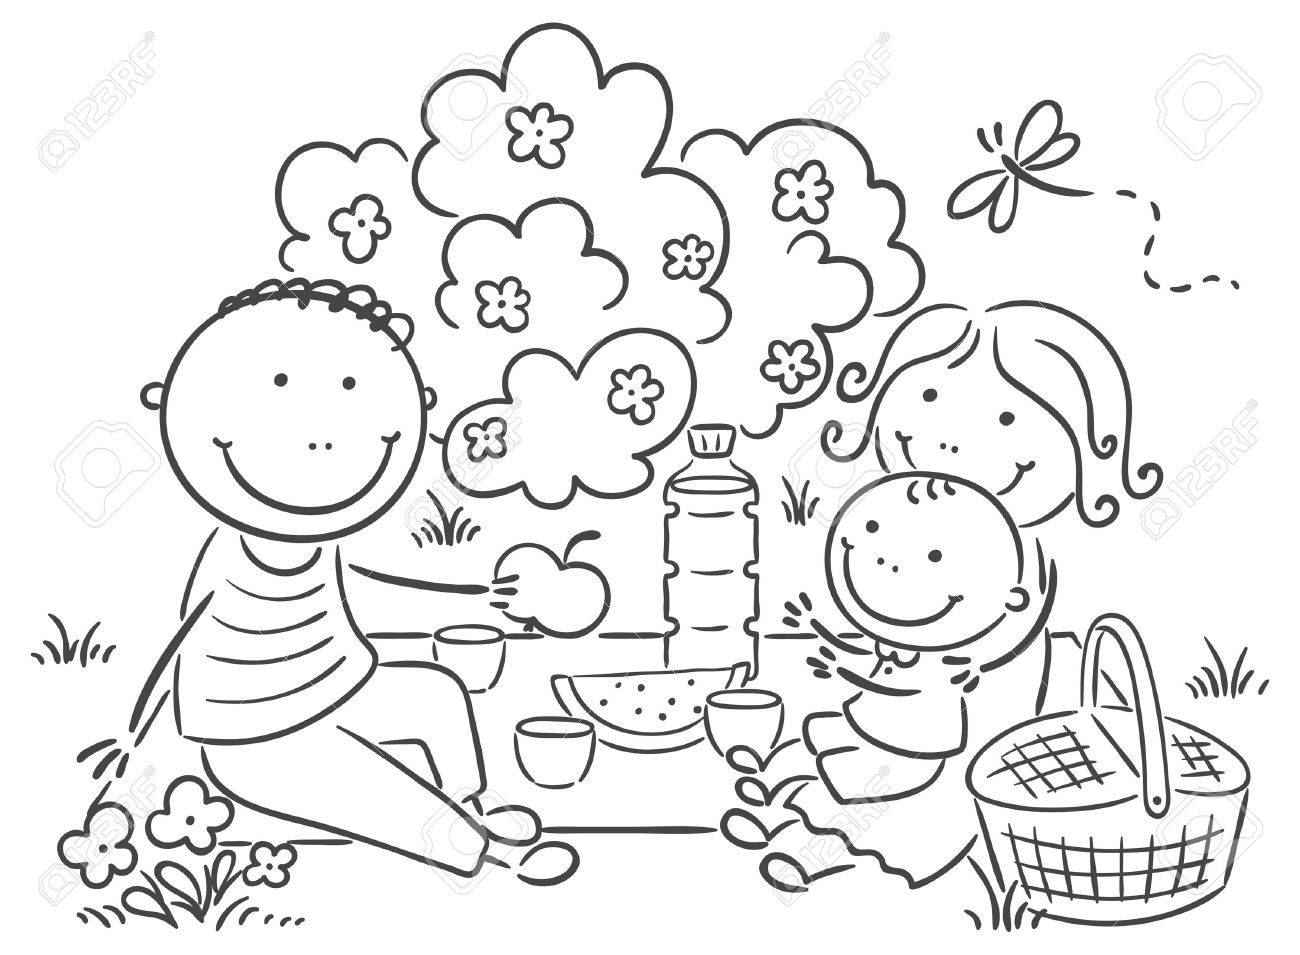 royalty free download Picnic clipart black and white. Portal